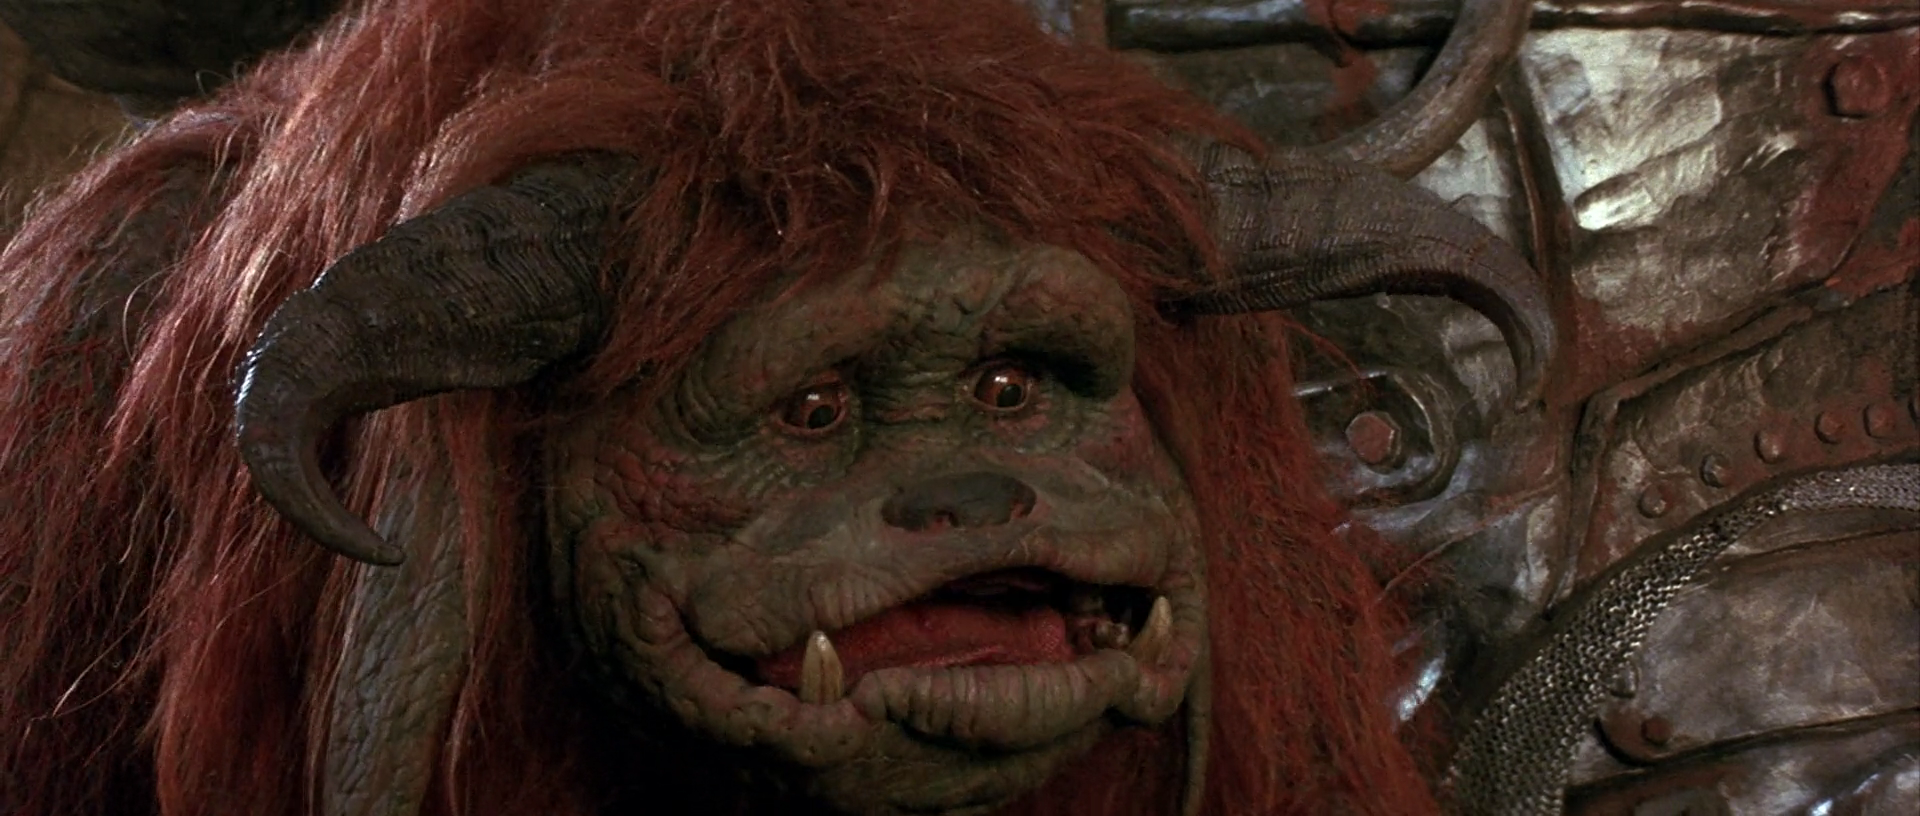 Labyrinth (1986): My Five Favourite Things | FILM GRIMOIRE Labyrinth 1986 Ludo